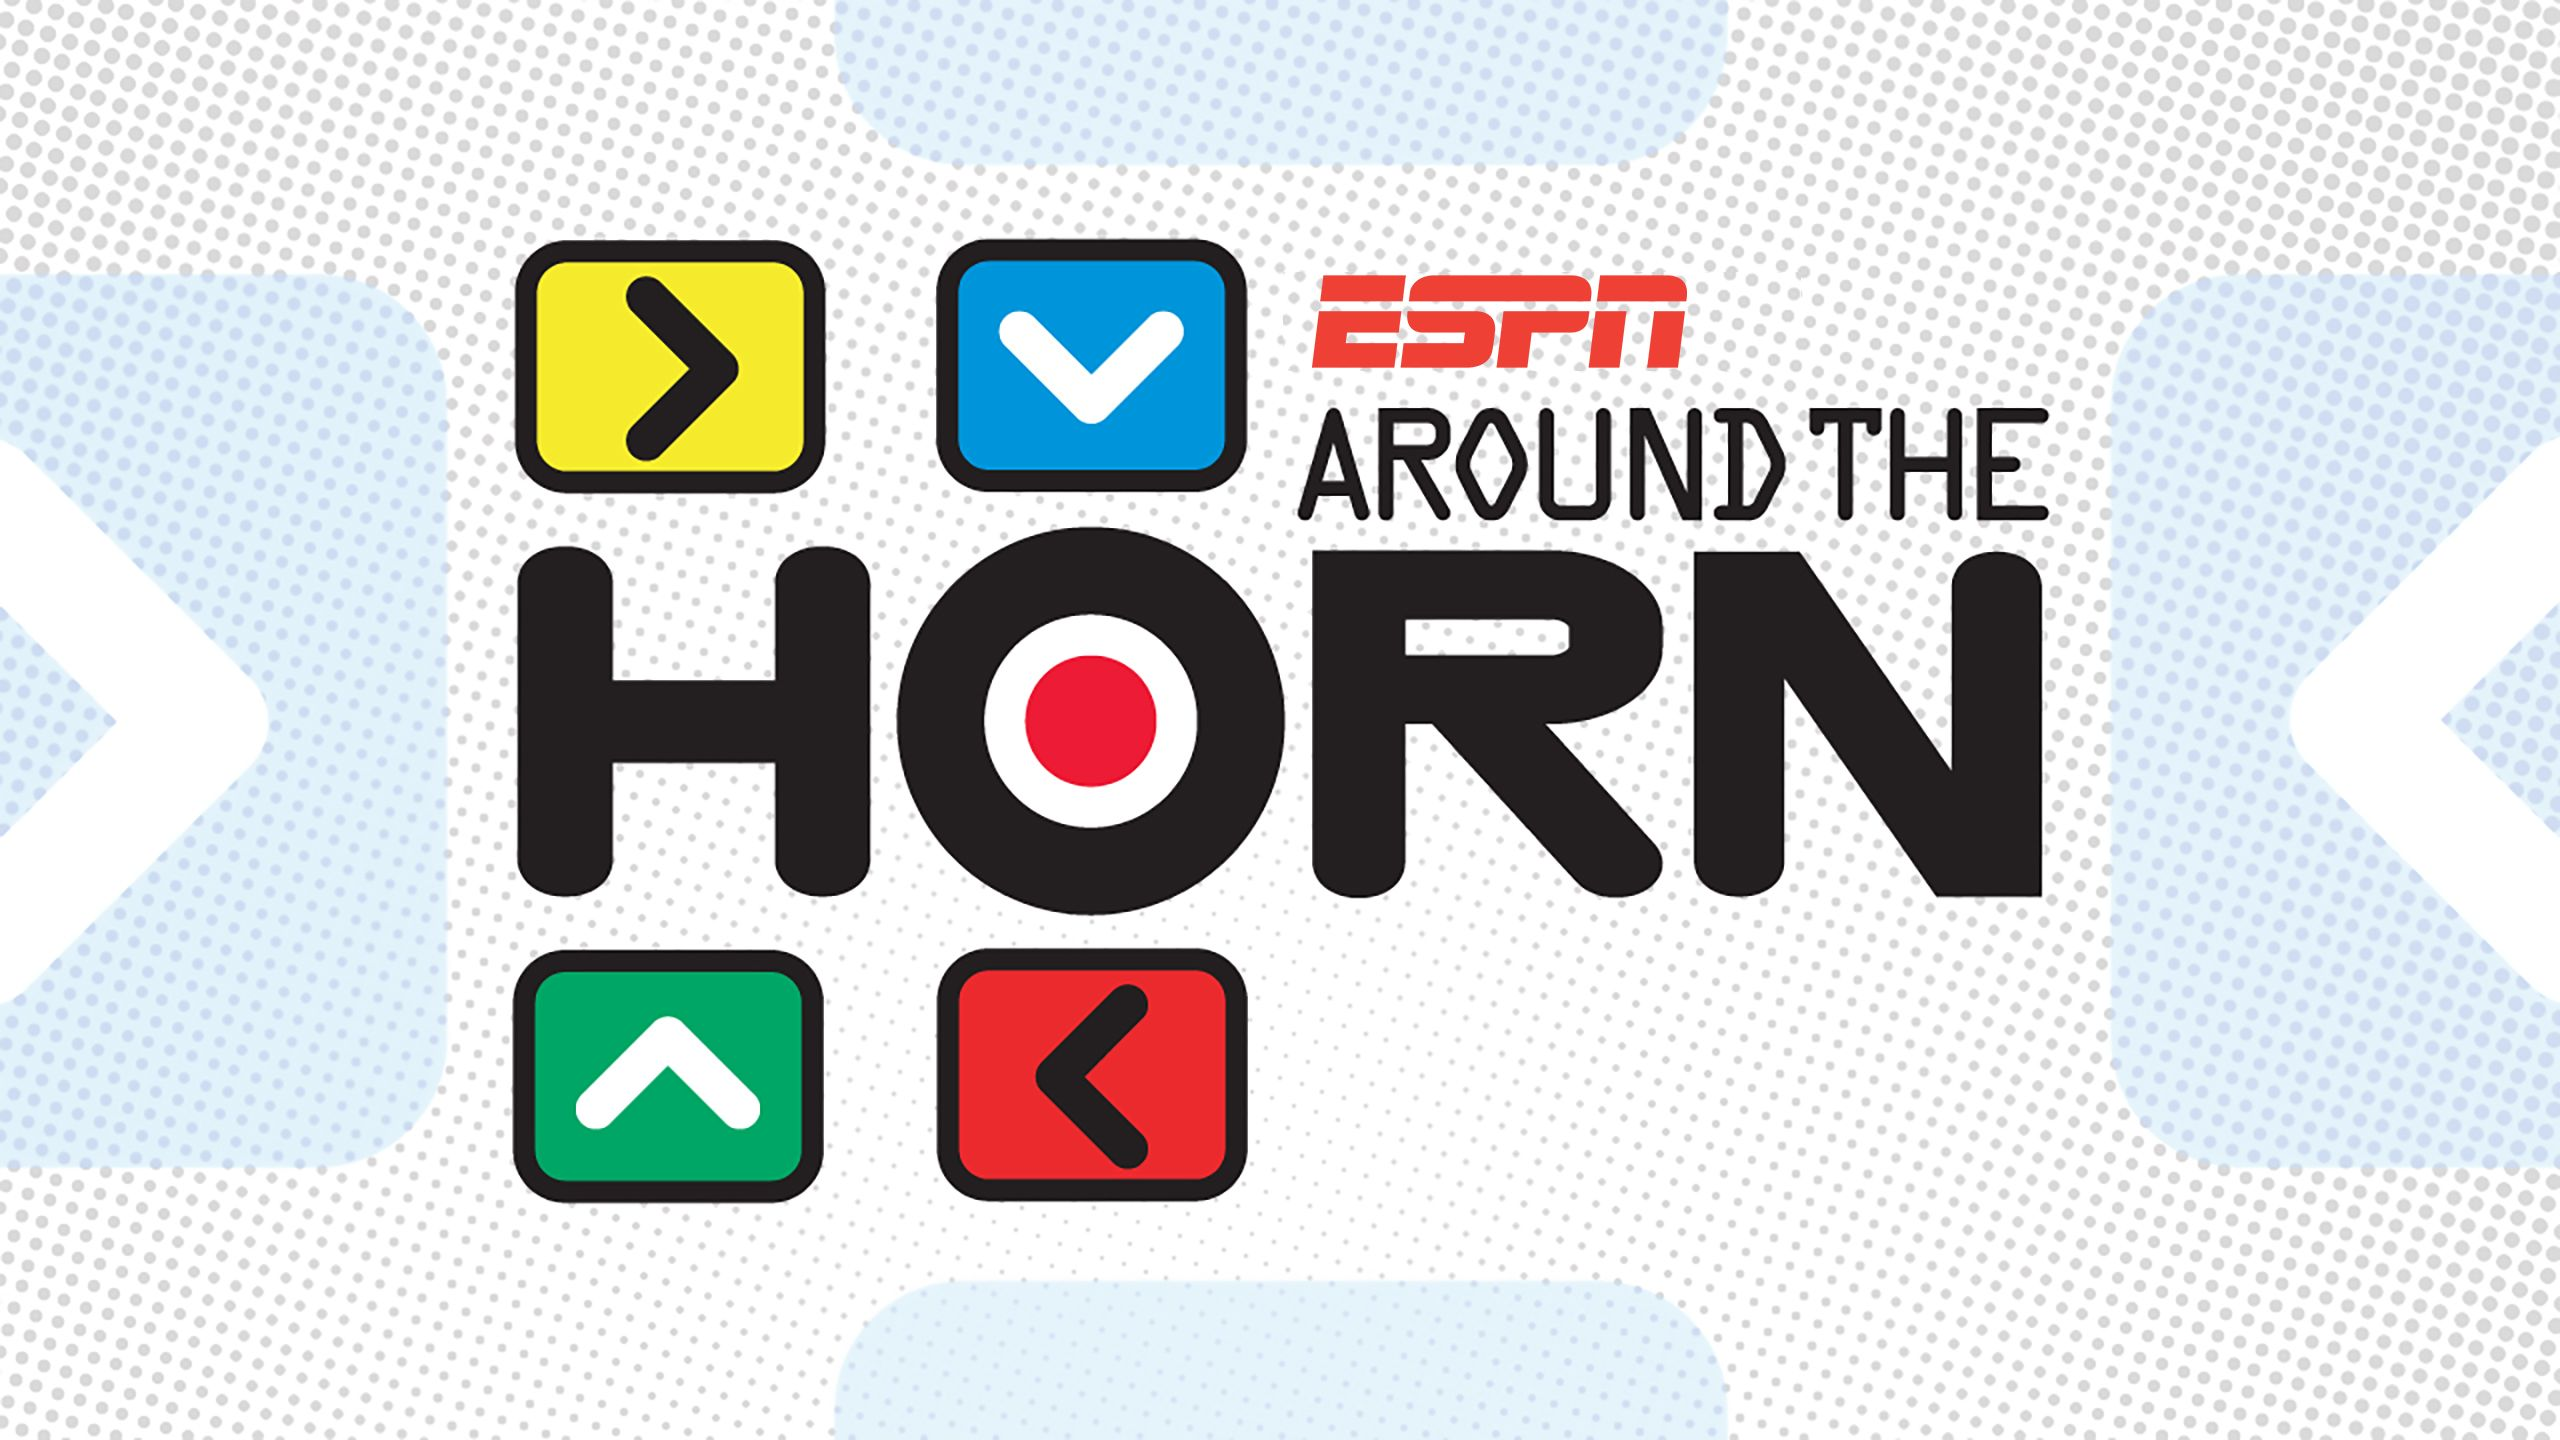 Tue, 3/20 - Around The Horn